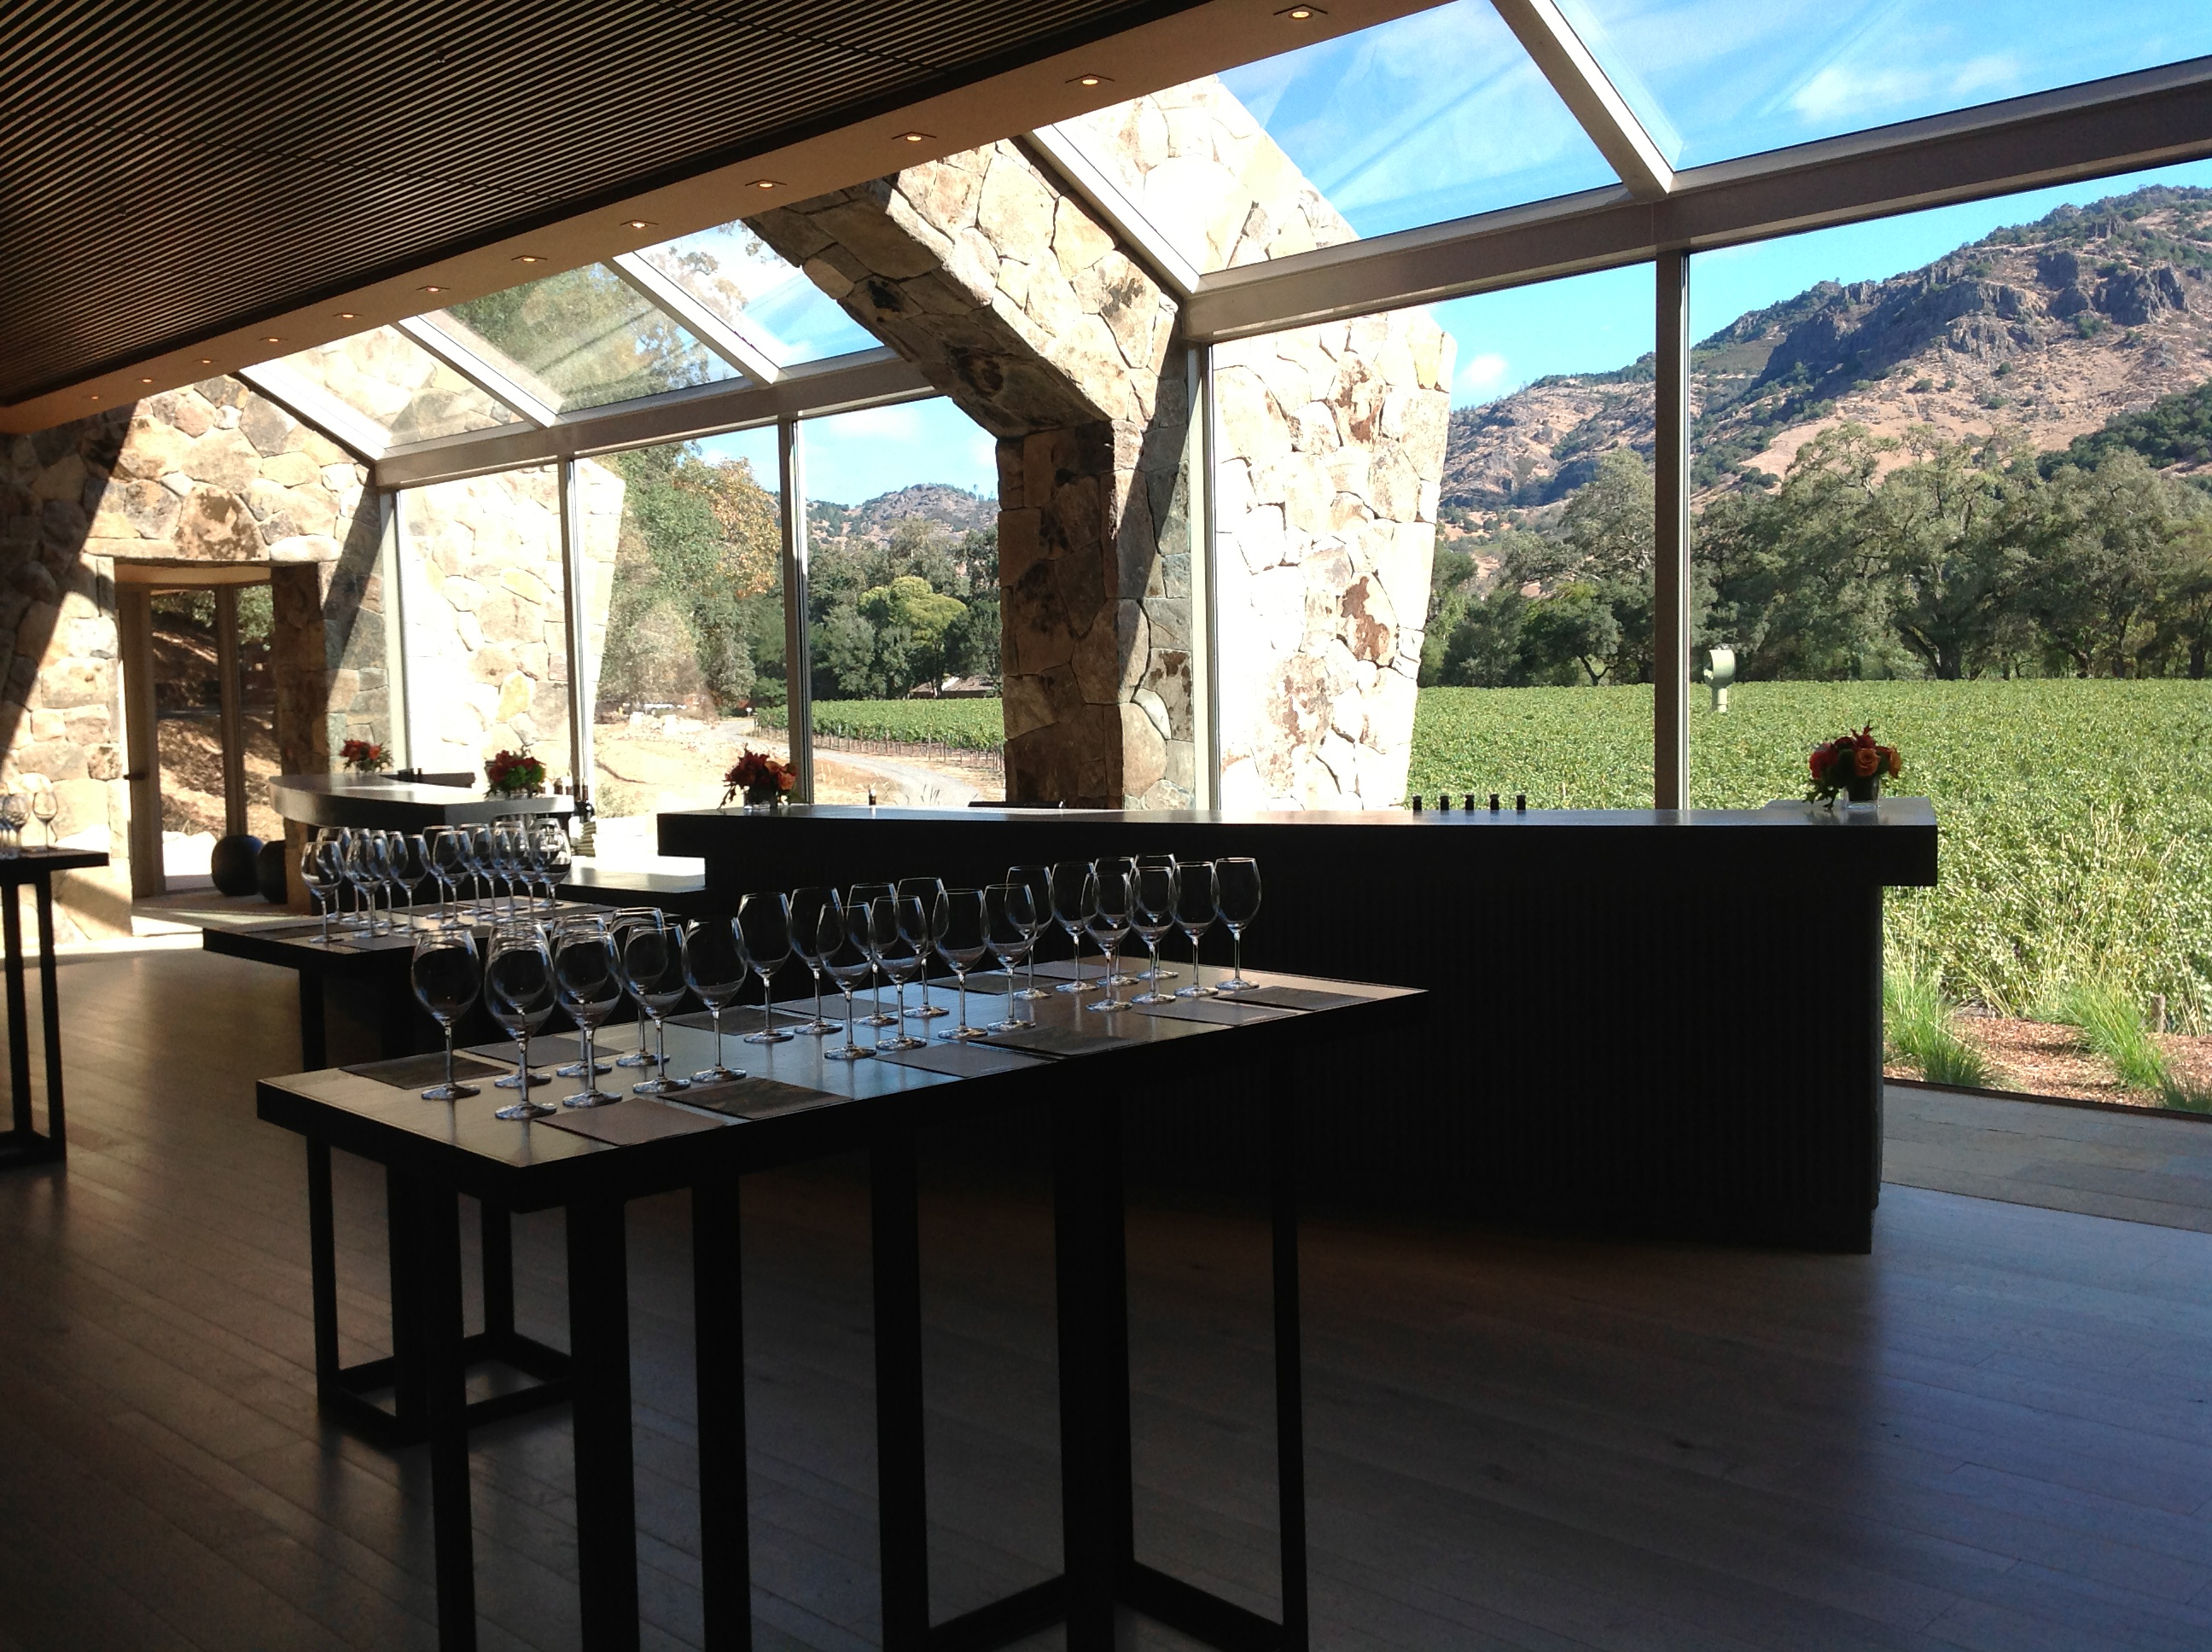 48 Hours in Napa Valley Stag's Leap